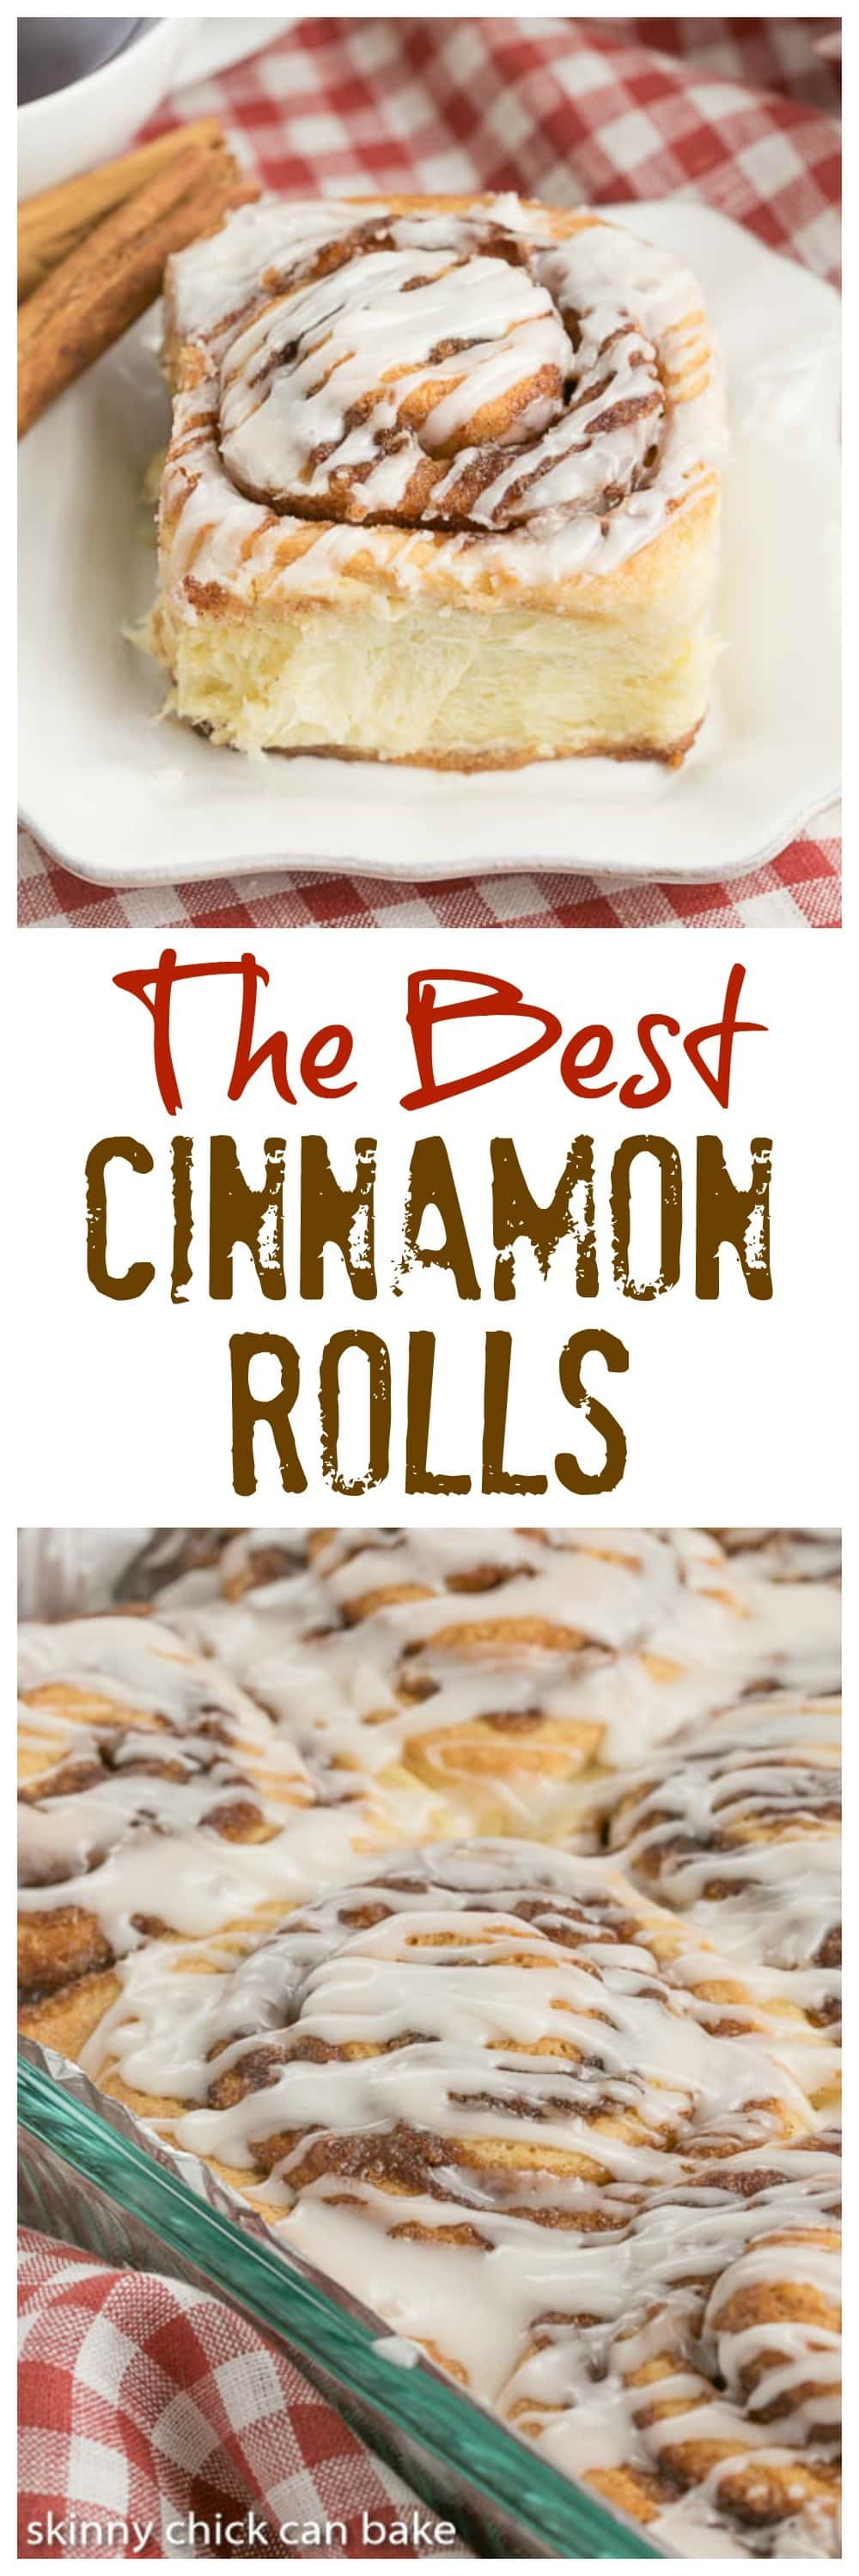 The Best Cinnamon Rolls - Tender, buttery dough filled with brown sugar and cinnamon and drizzled with a simple glaze #cinnamonrolls #breakfast #brunch